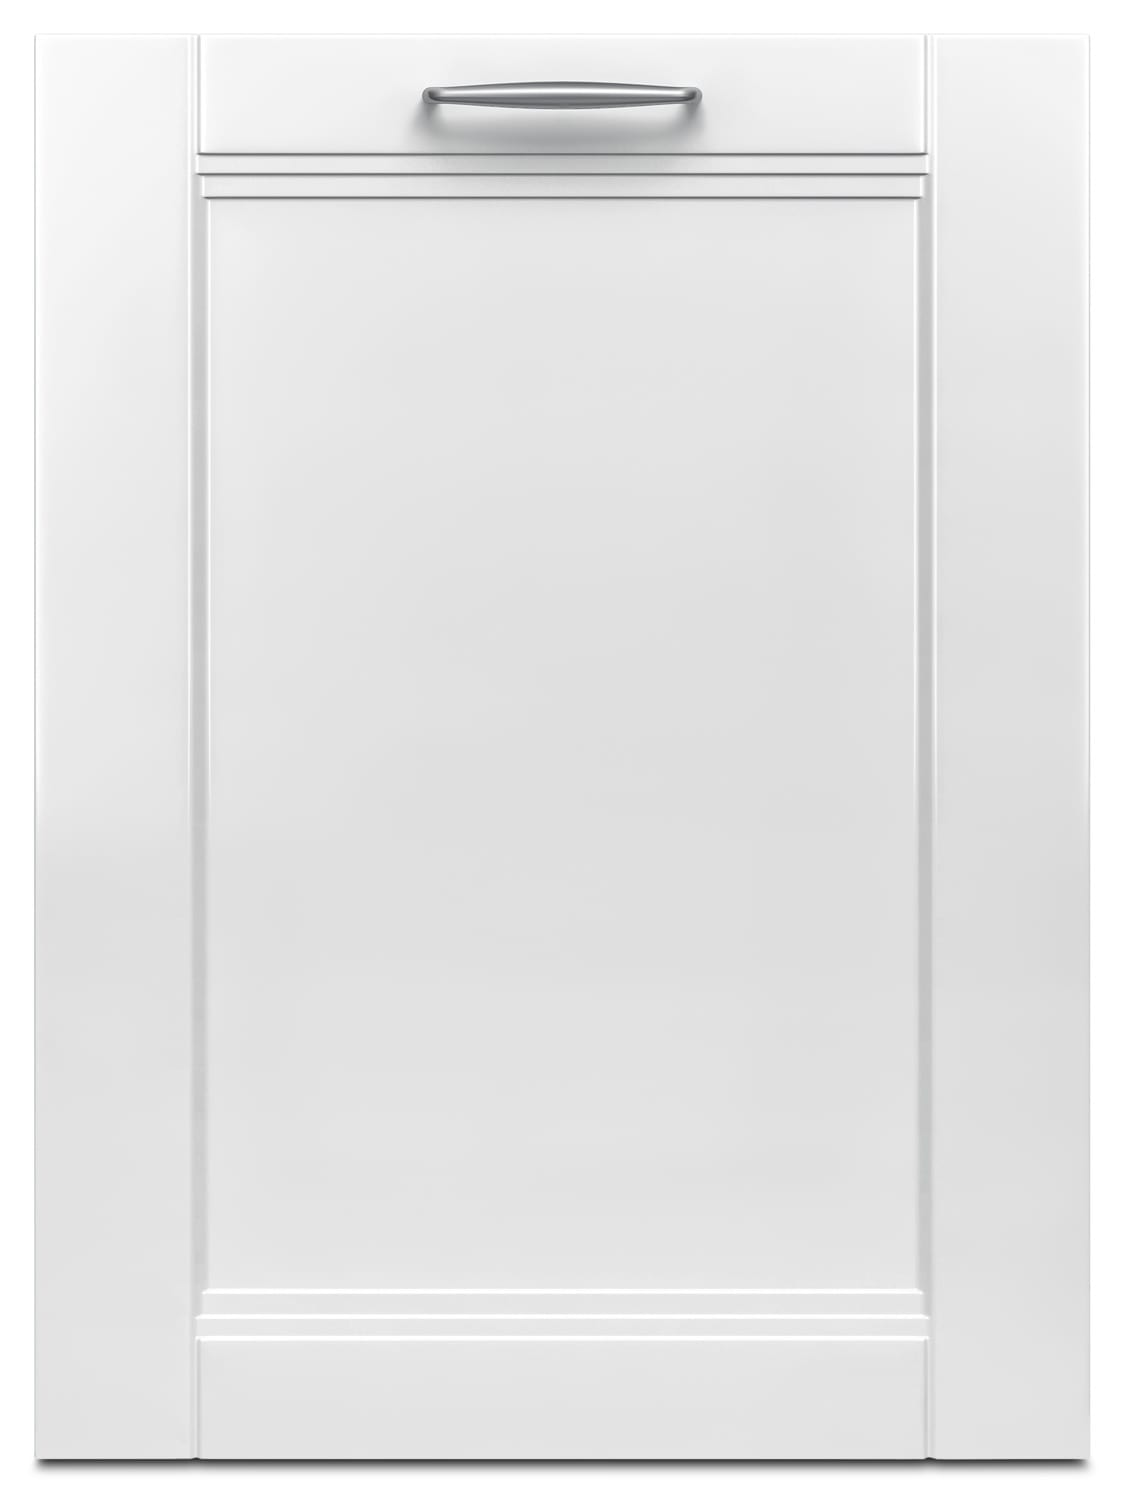 Bosch 800 Series Panel-Ready Dishwasher – SHVM98W73N